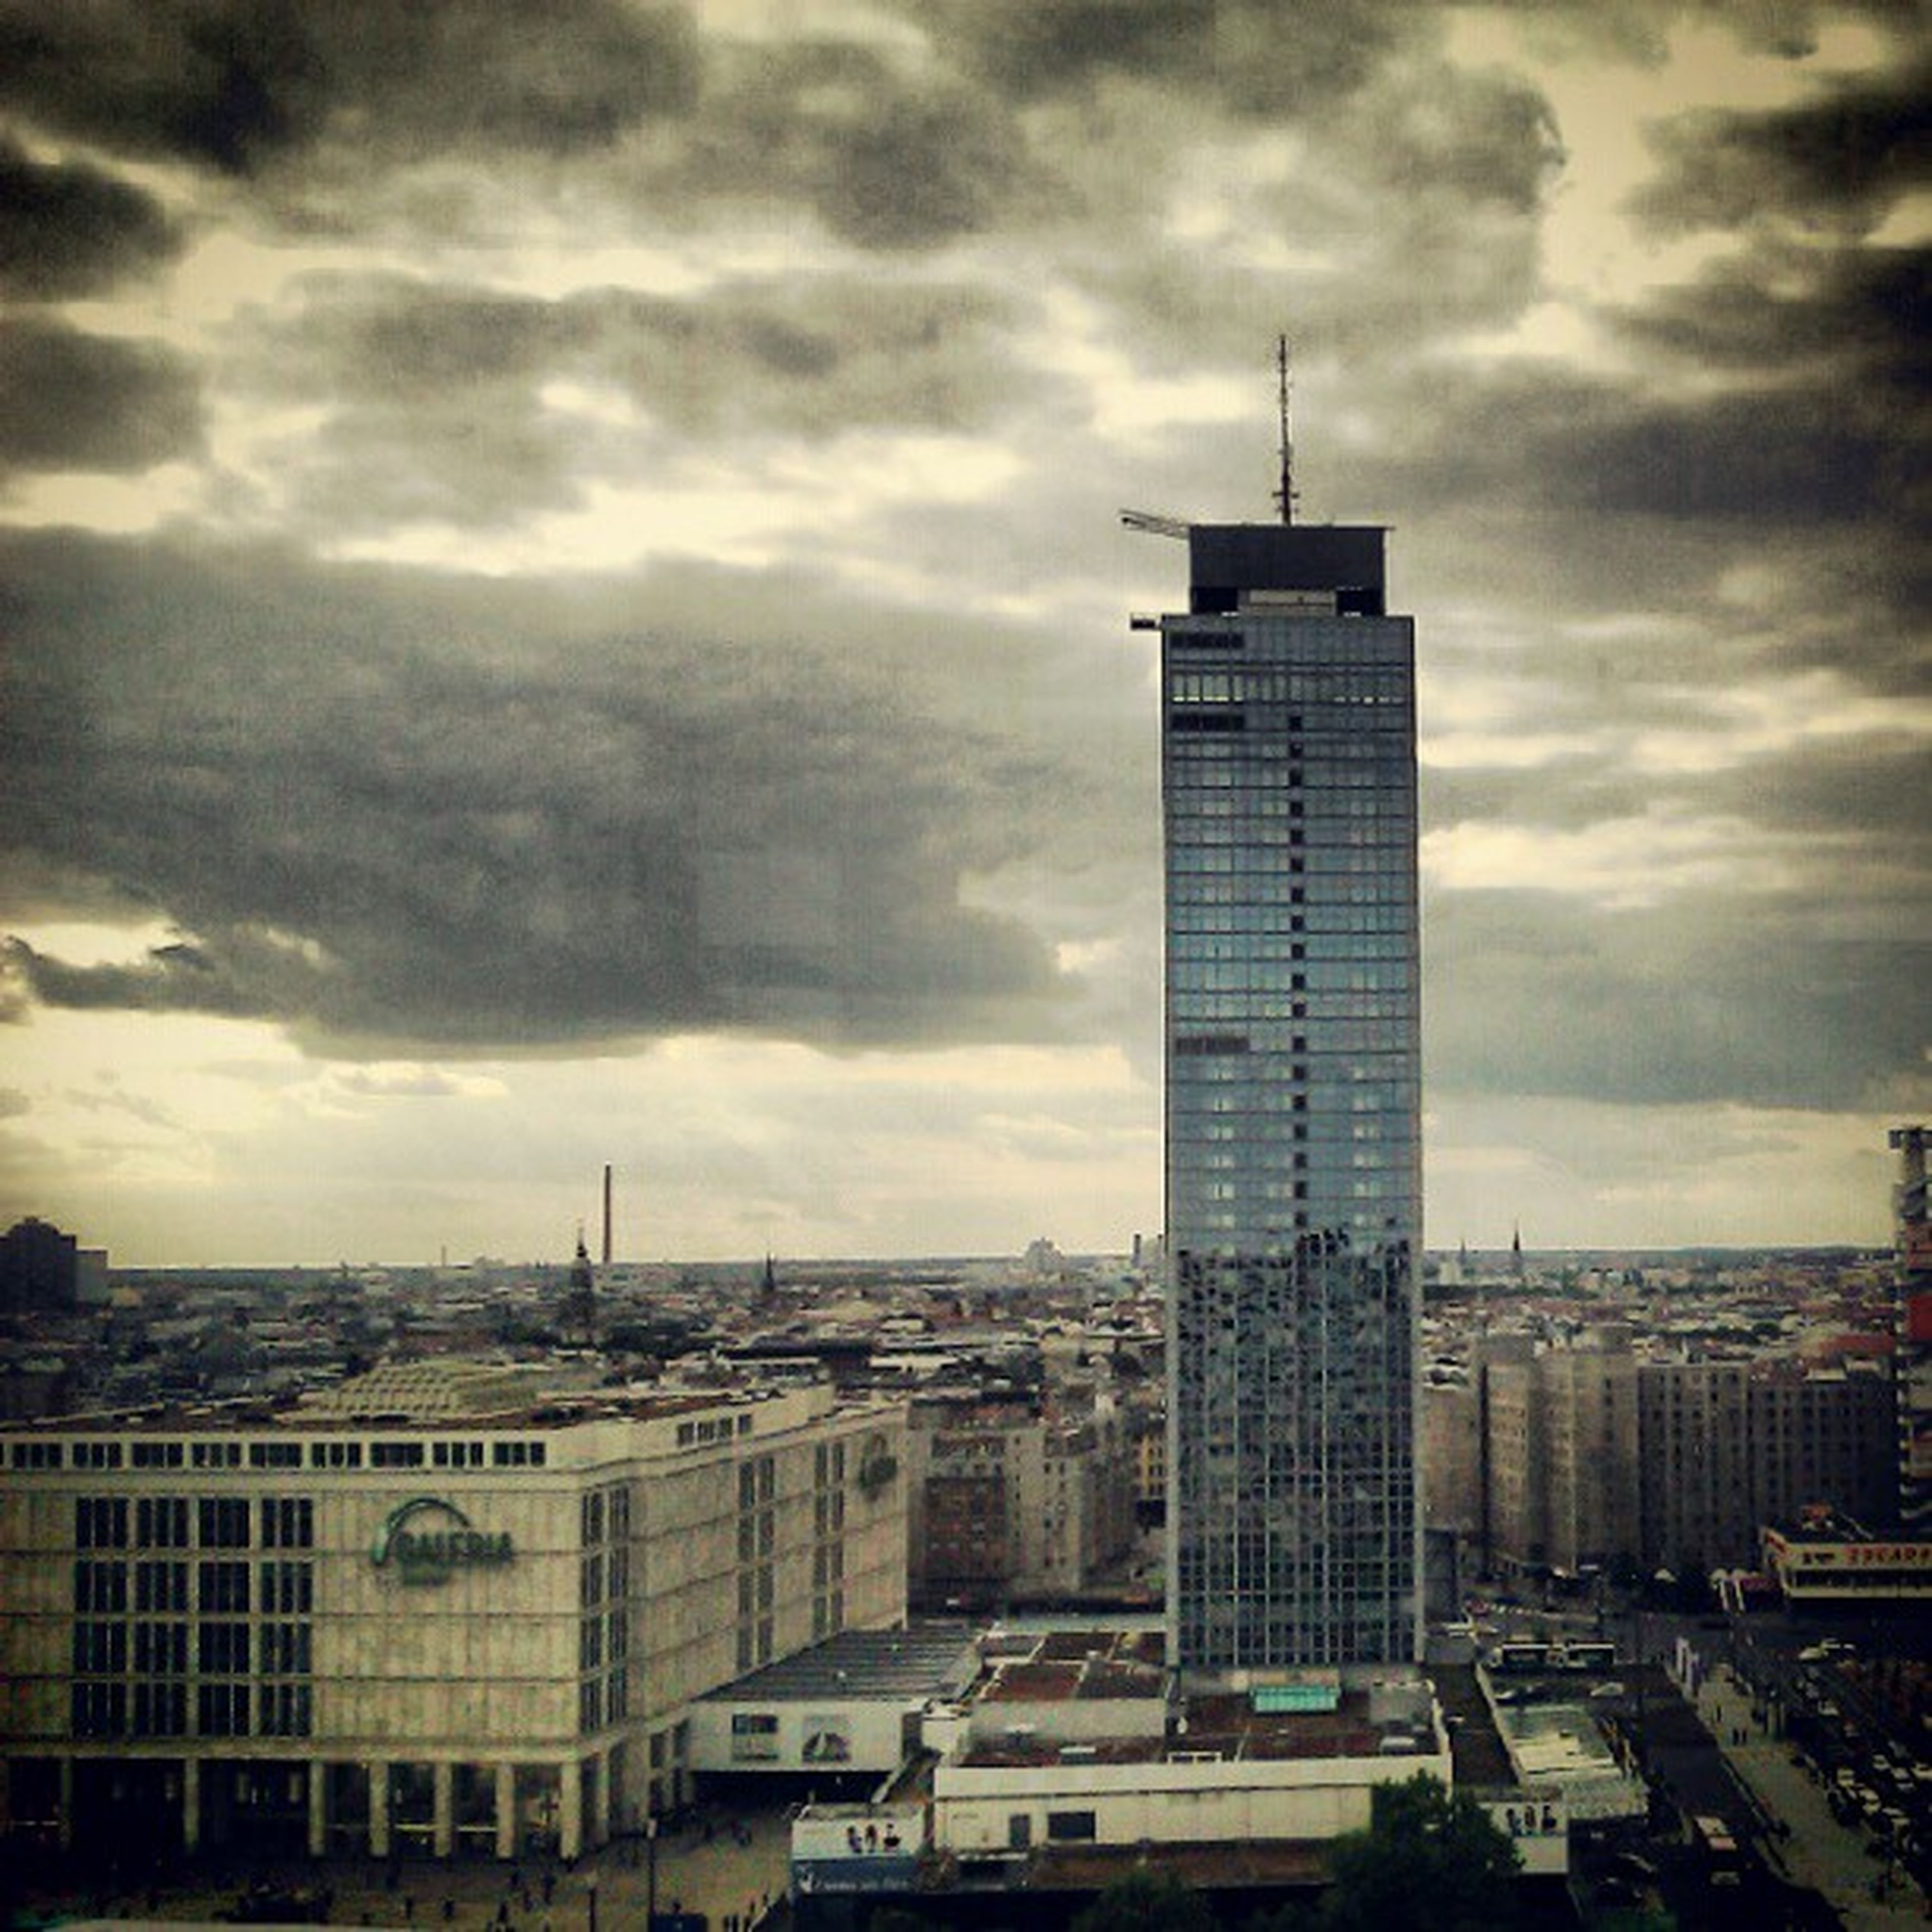 building exterior, architecture, built structure, sky, city, cloud - sky, cloudy, cityscape, skyscraper, tower, weather, tall - high, overcast, cloud, office building, modern, city life, building, residential building, storm cloud